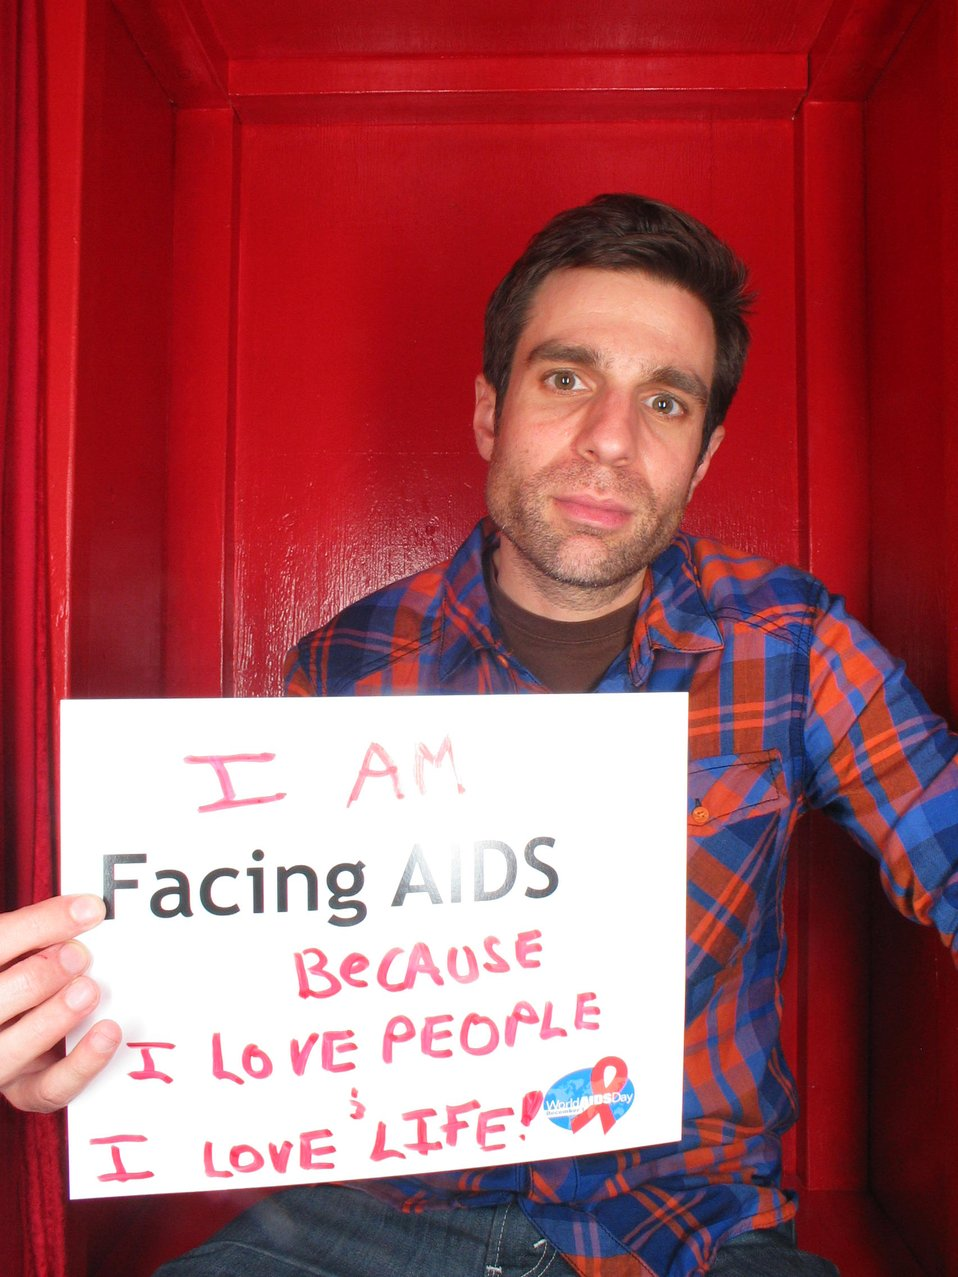 I am Facing AIDS because I love people and love life.